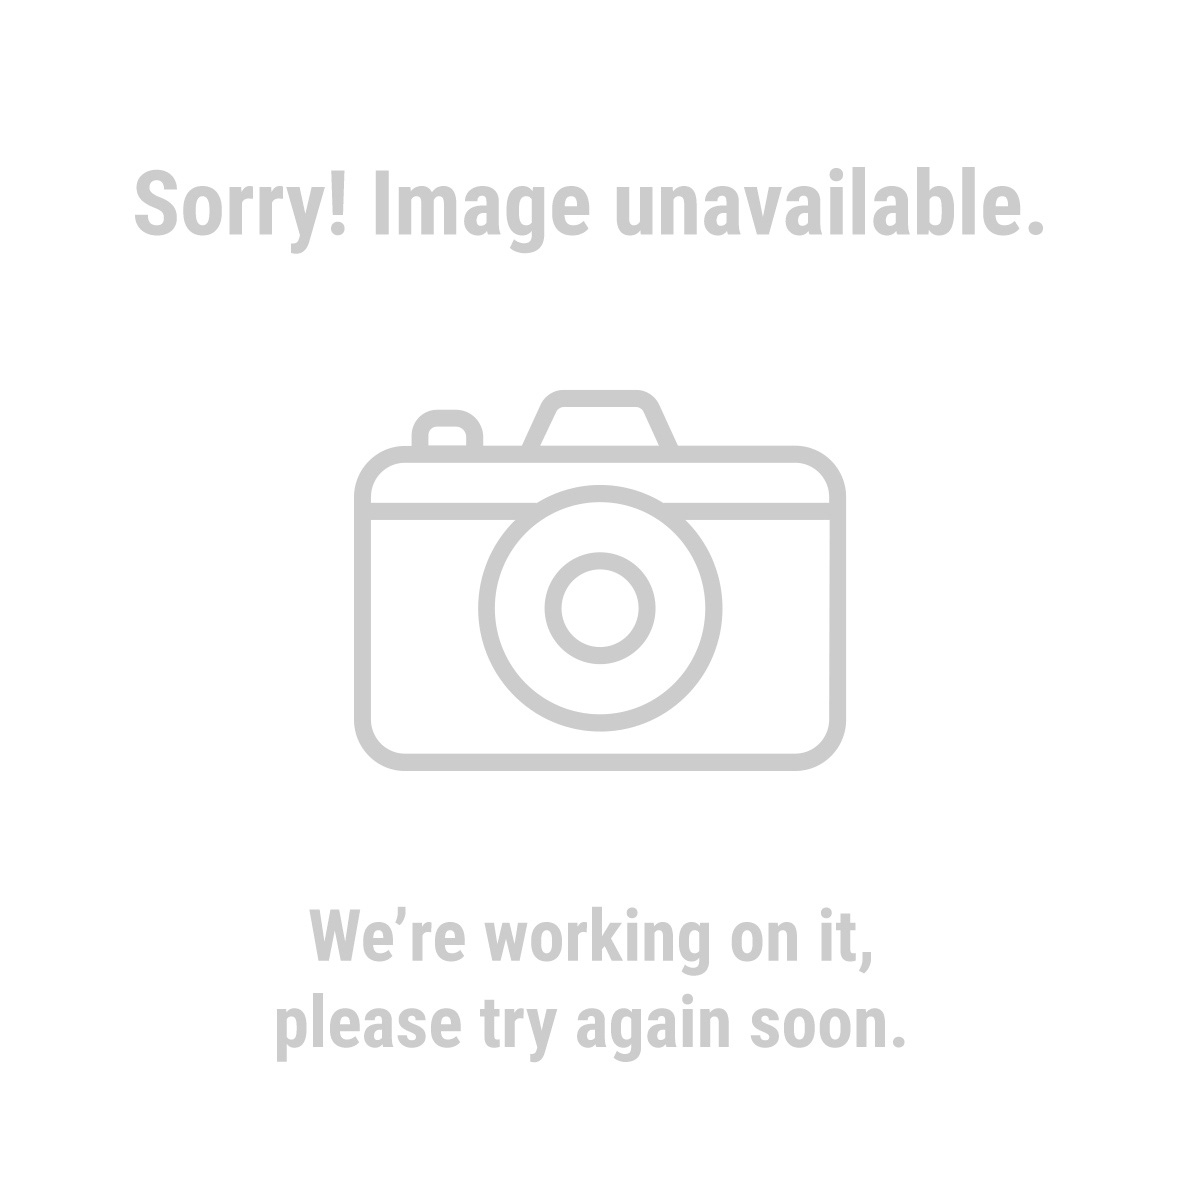 Warrior® 61154 4-1/2 in. 30 Grit Metal Cut-off  Wheel